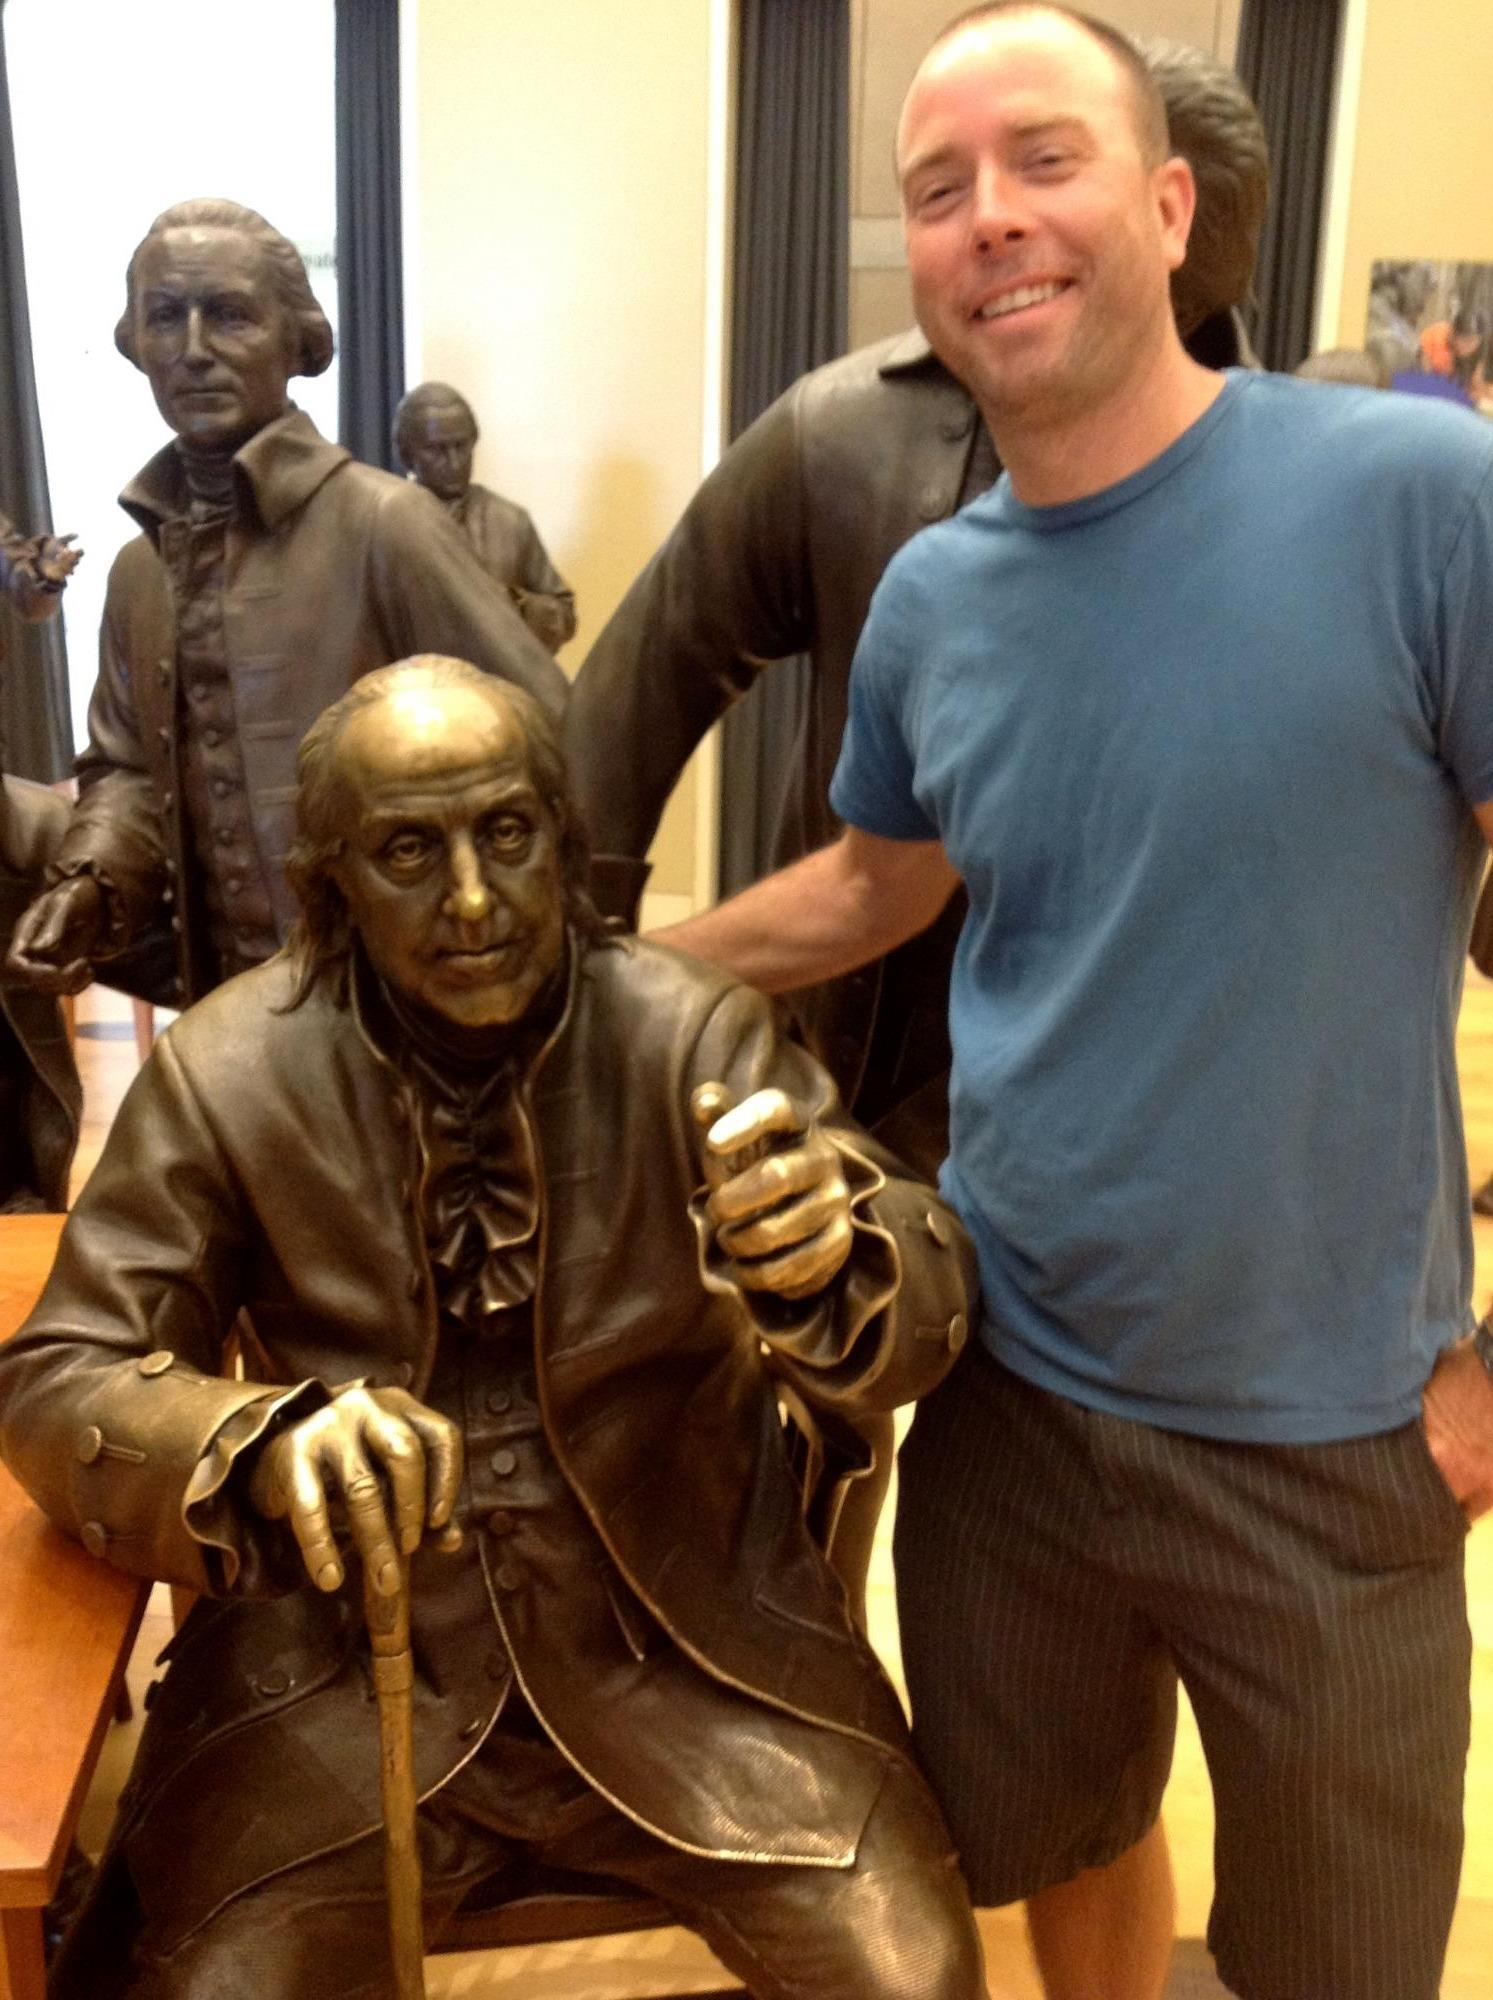 Picture of Mr. Newcomer with a Ben Franklin statue